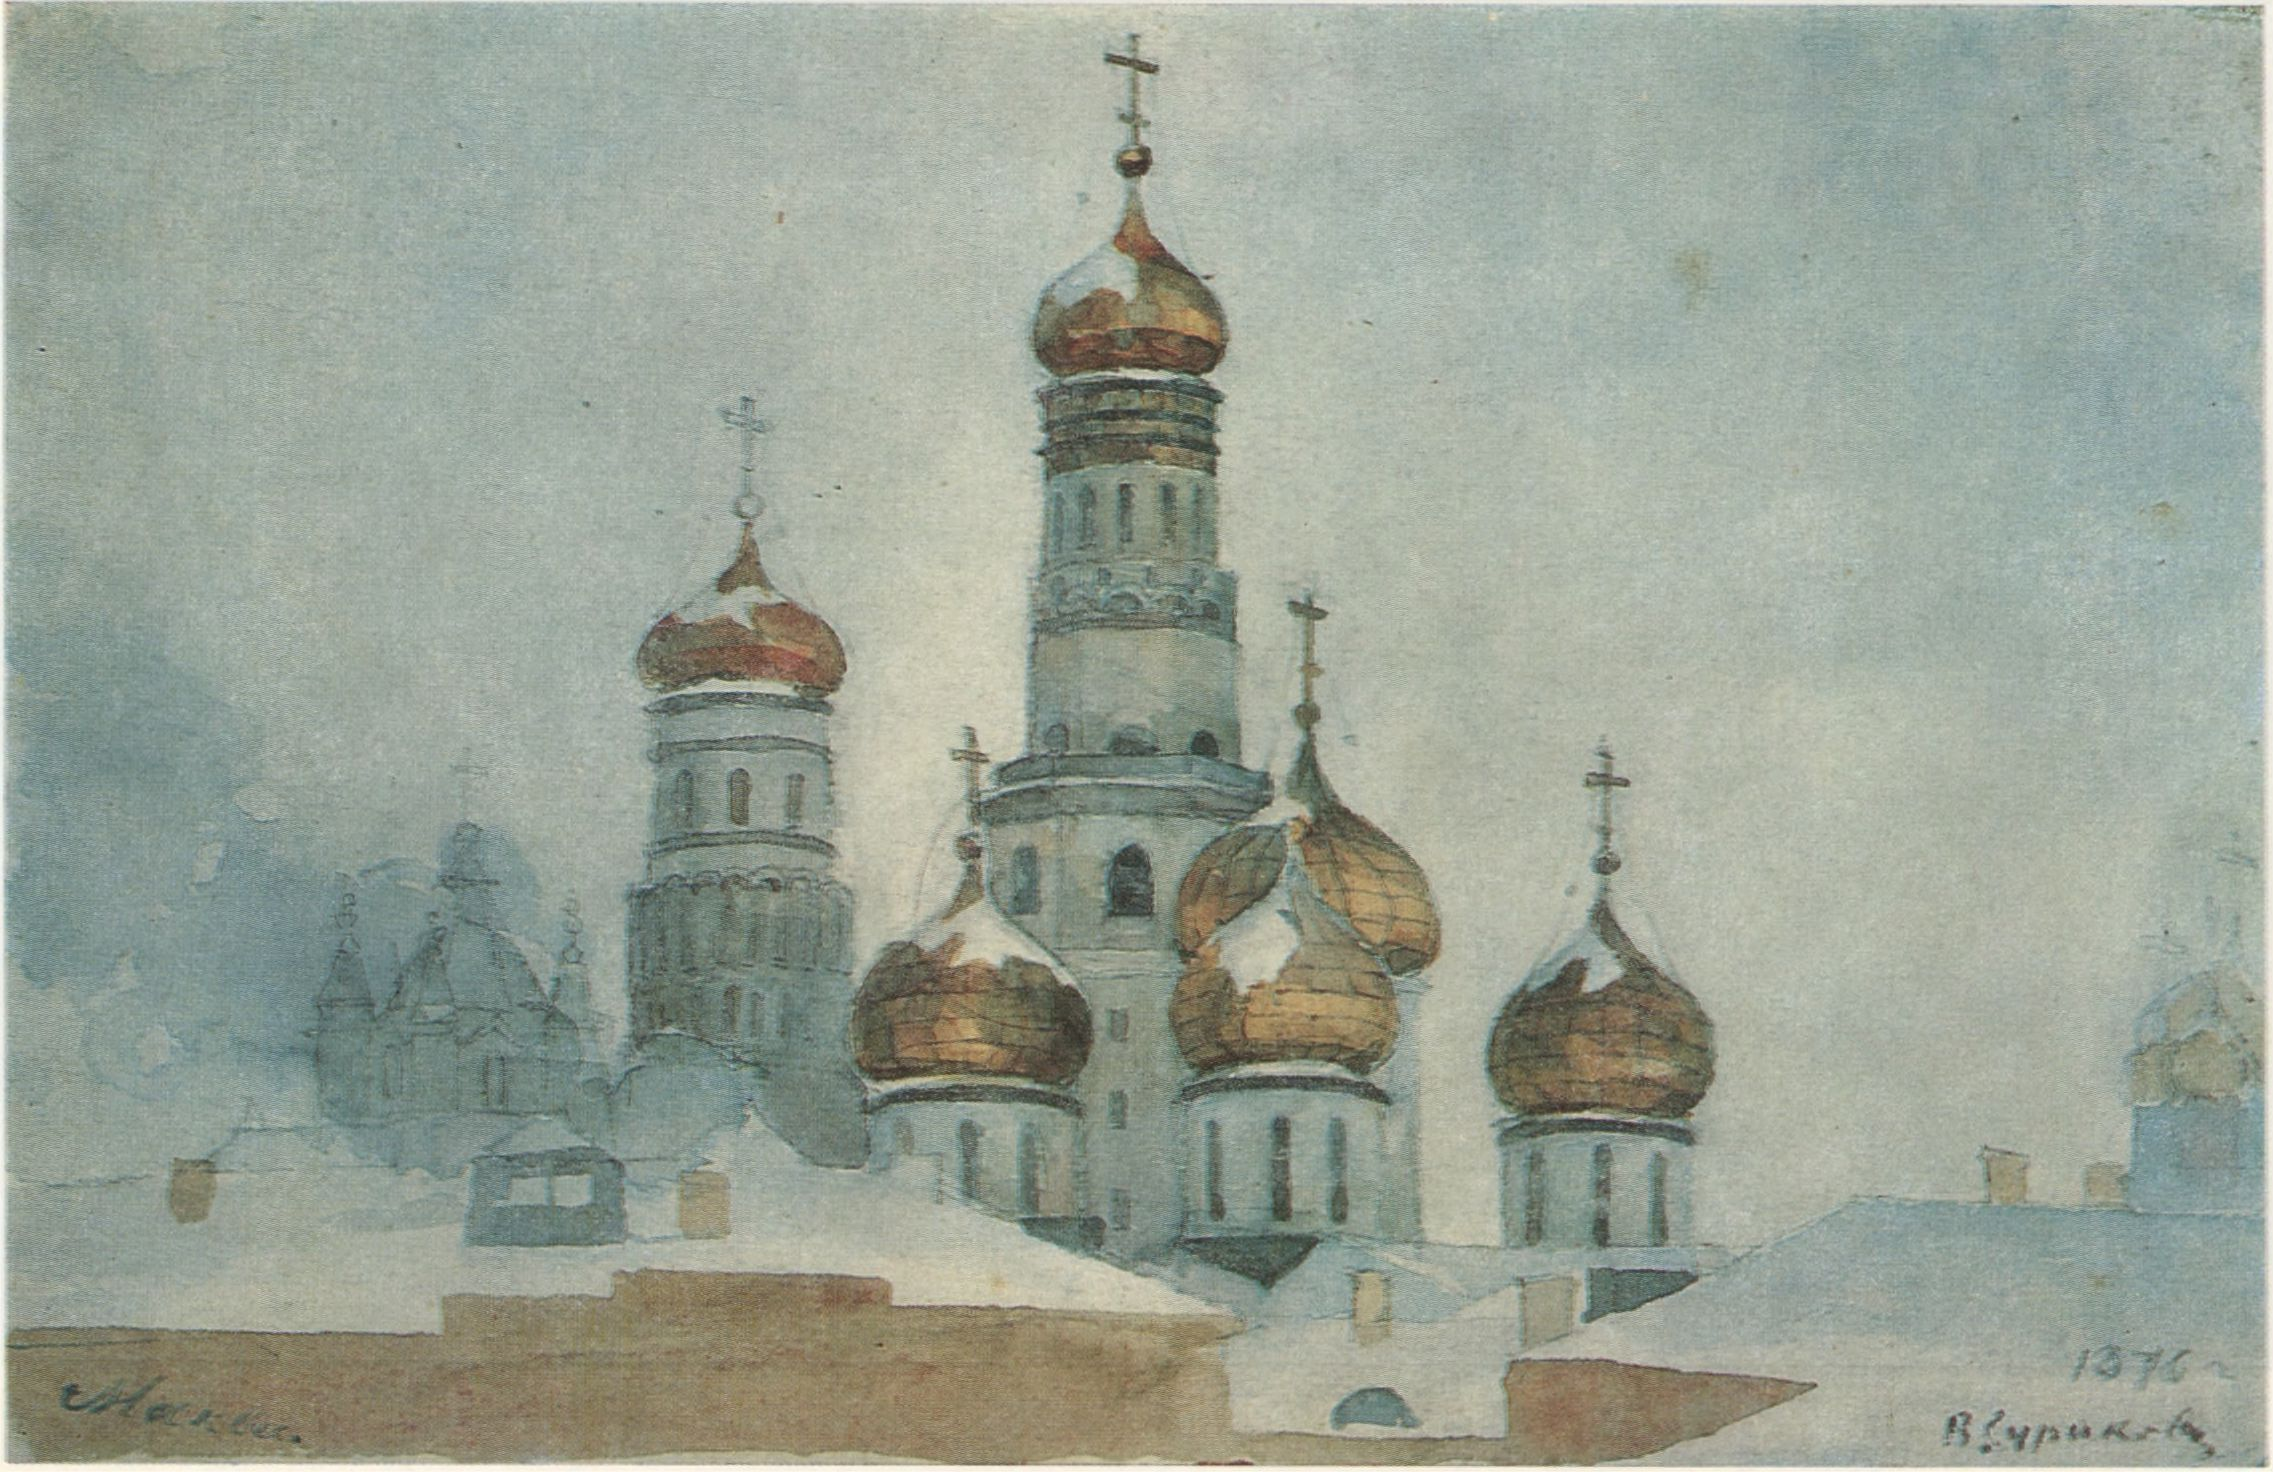 8. Колокольня Ивана Великого и купола Успенского собора. 1876 (Belfry of Ivan the Great and Domes of the Dormition Cathedral. 1876)